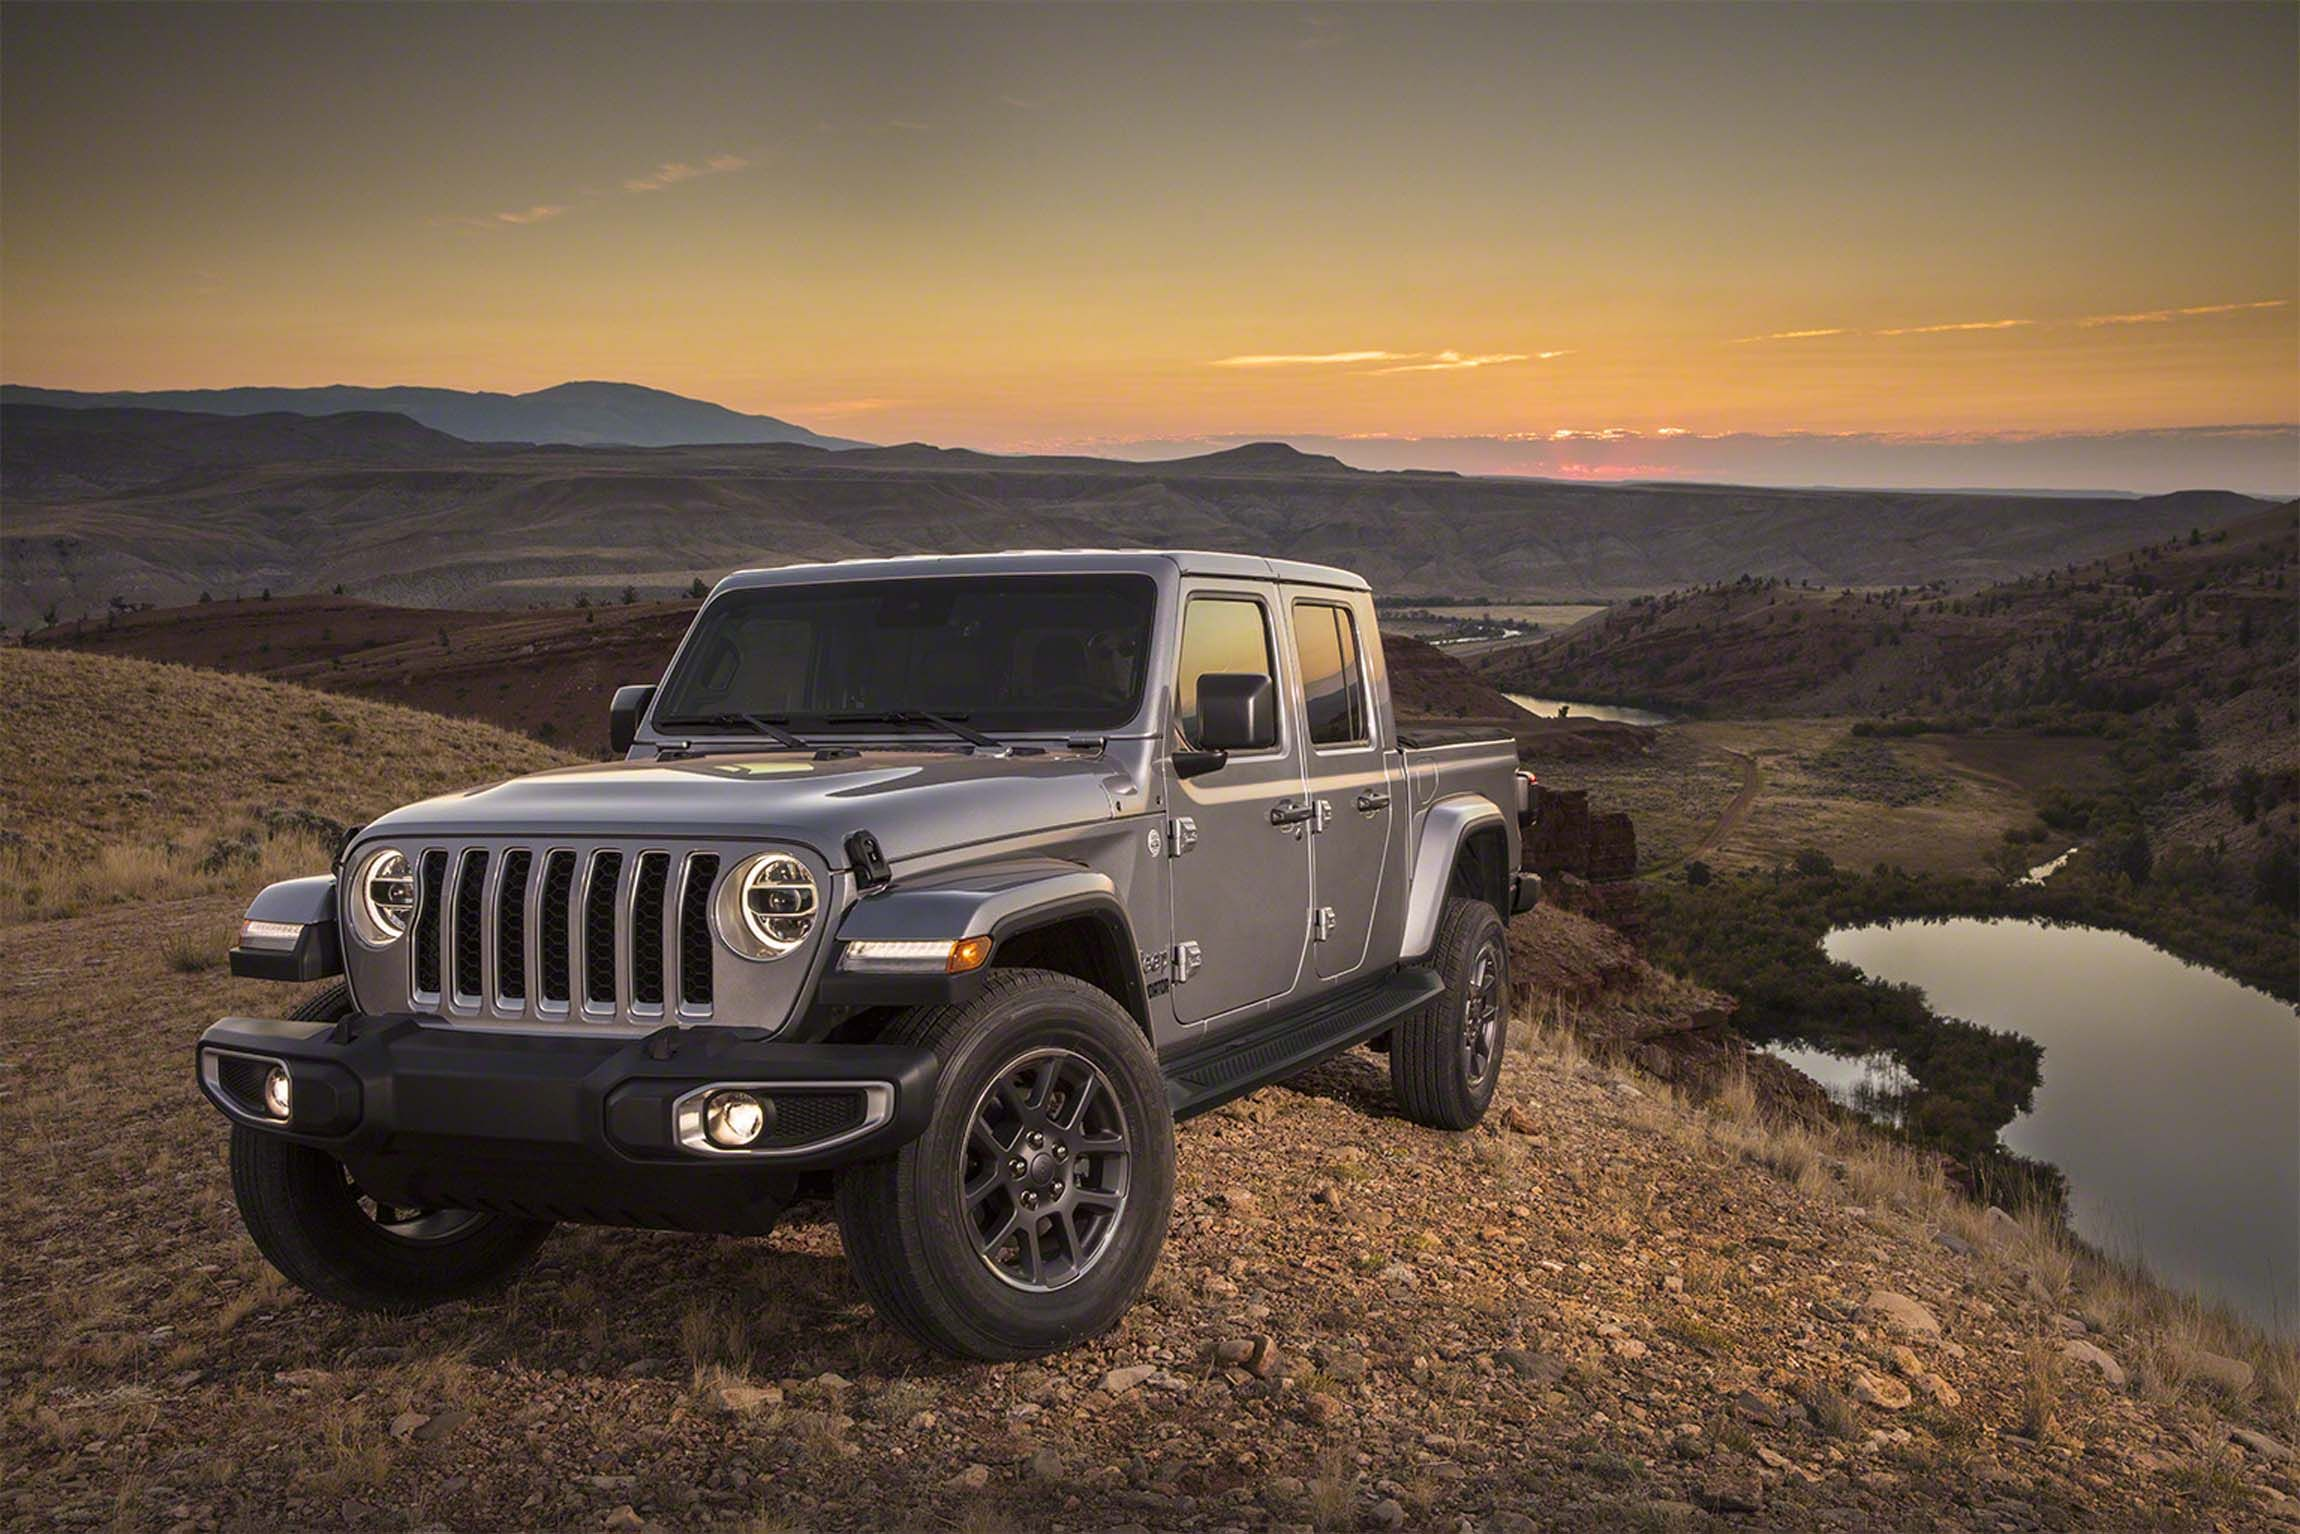 7 Ways The 2020 Jeep Gladiator Is More Than A Wrangler Pickup Truck Jeep Gladiator Wrangler Truck Wrangler Pickup